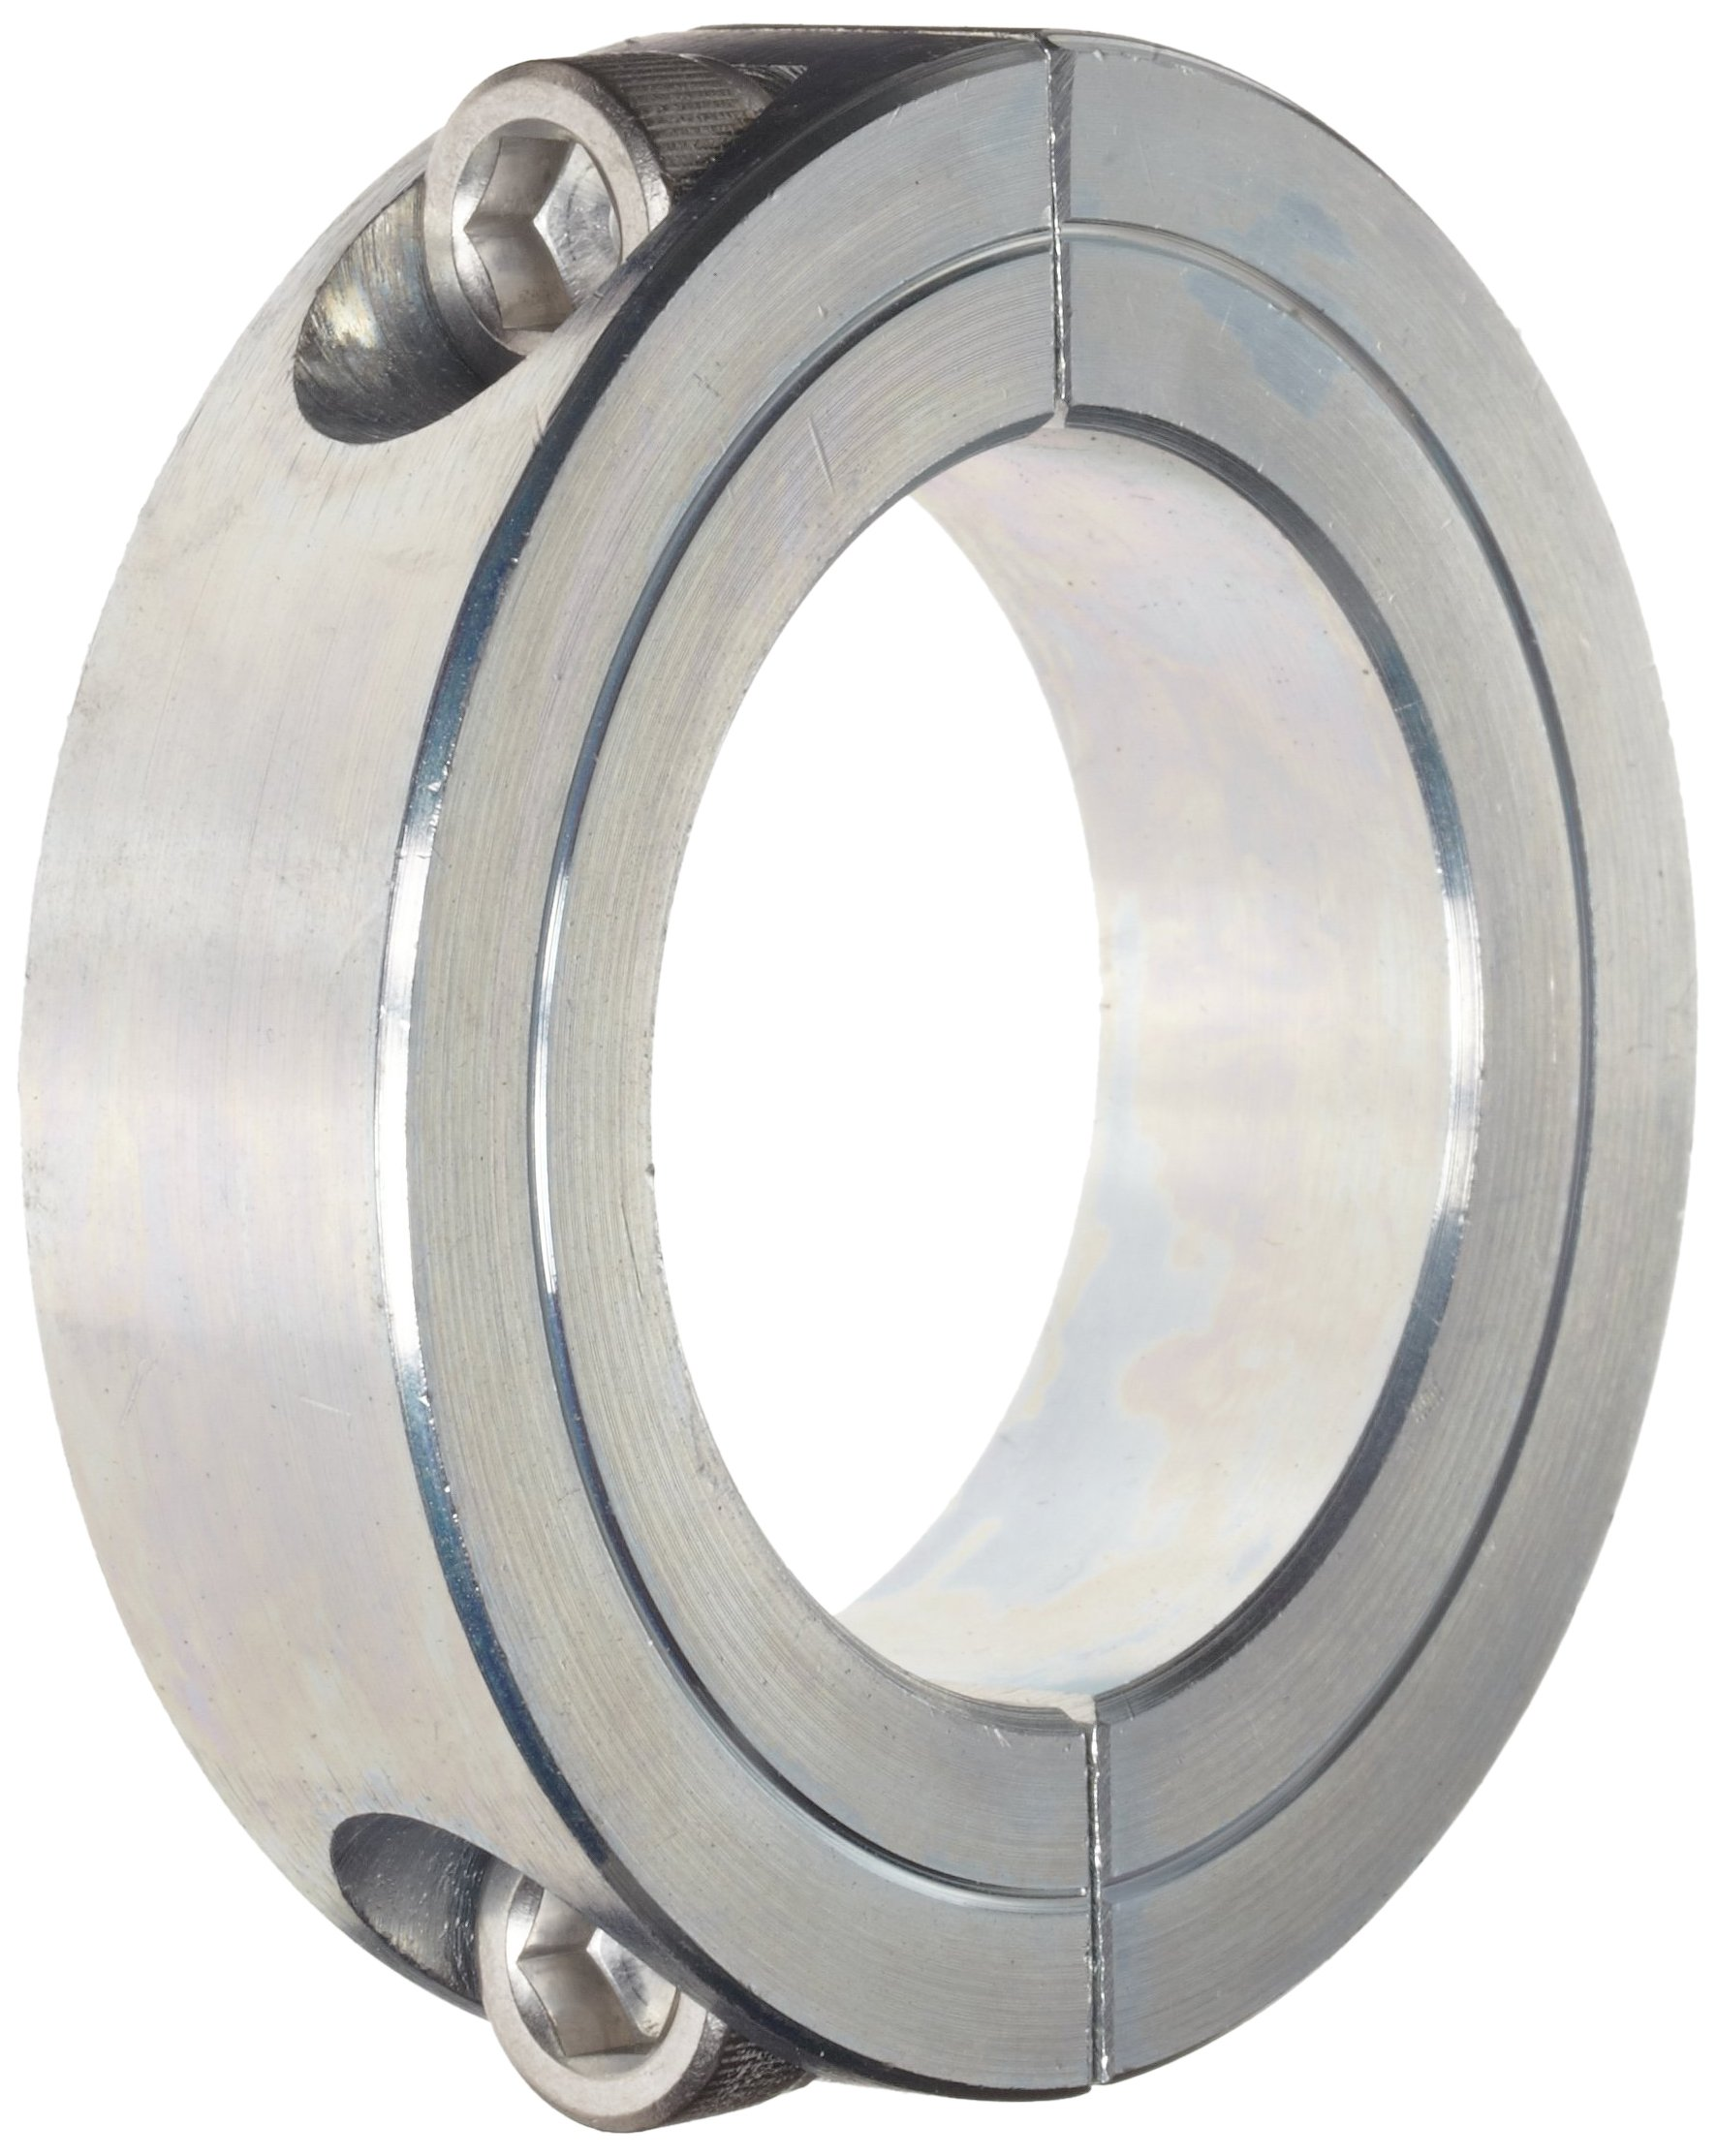 Climax Metal 2C-168-Z Two-Piece Clamping Collar, Zinc Plating, Steel, 1-11/16'' Bore, 2-3/4'' OD, 11/16'' Width